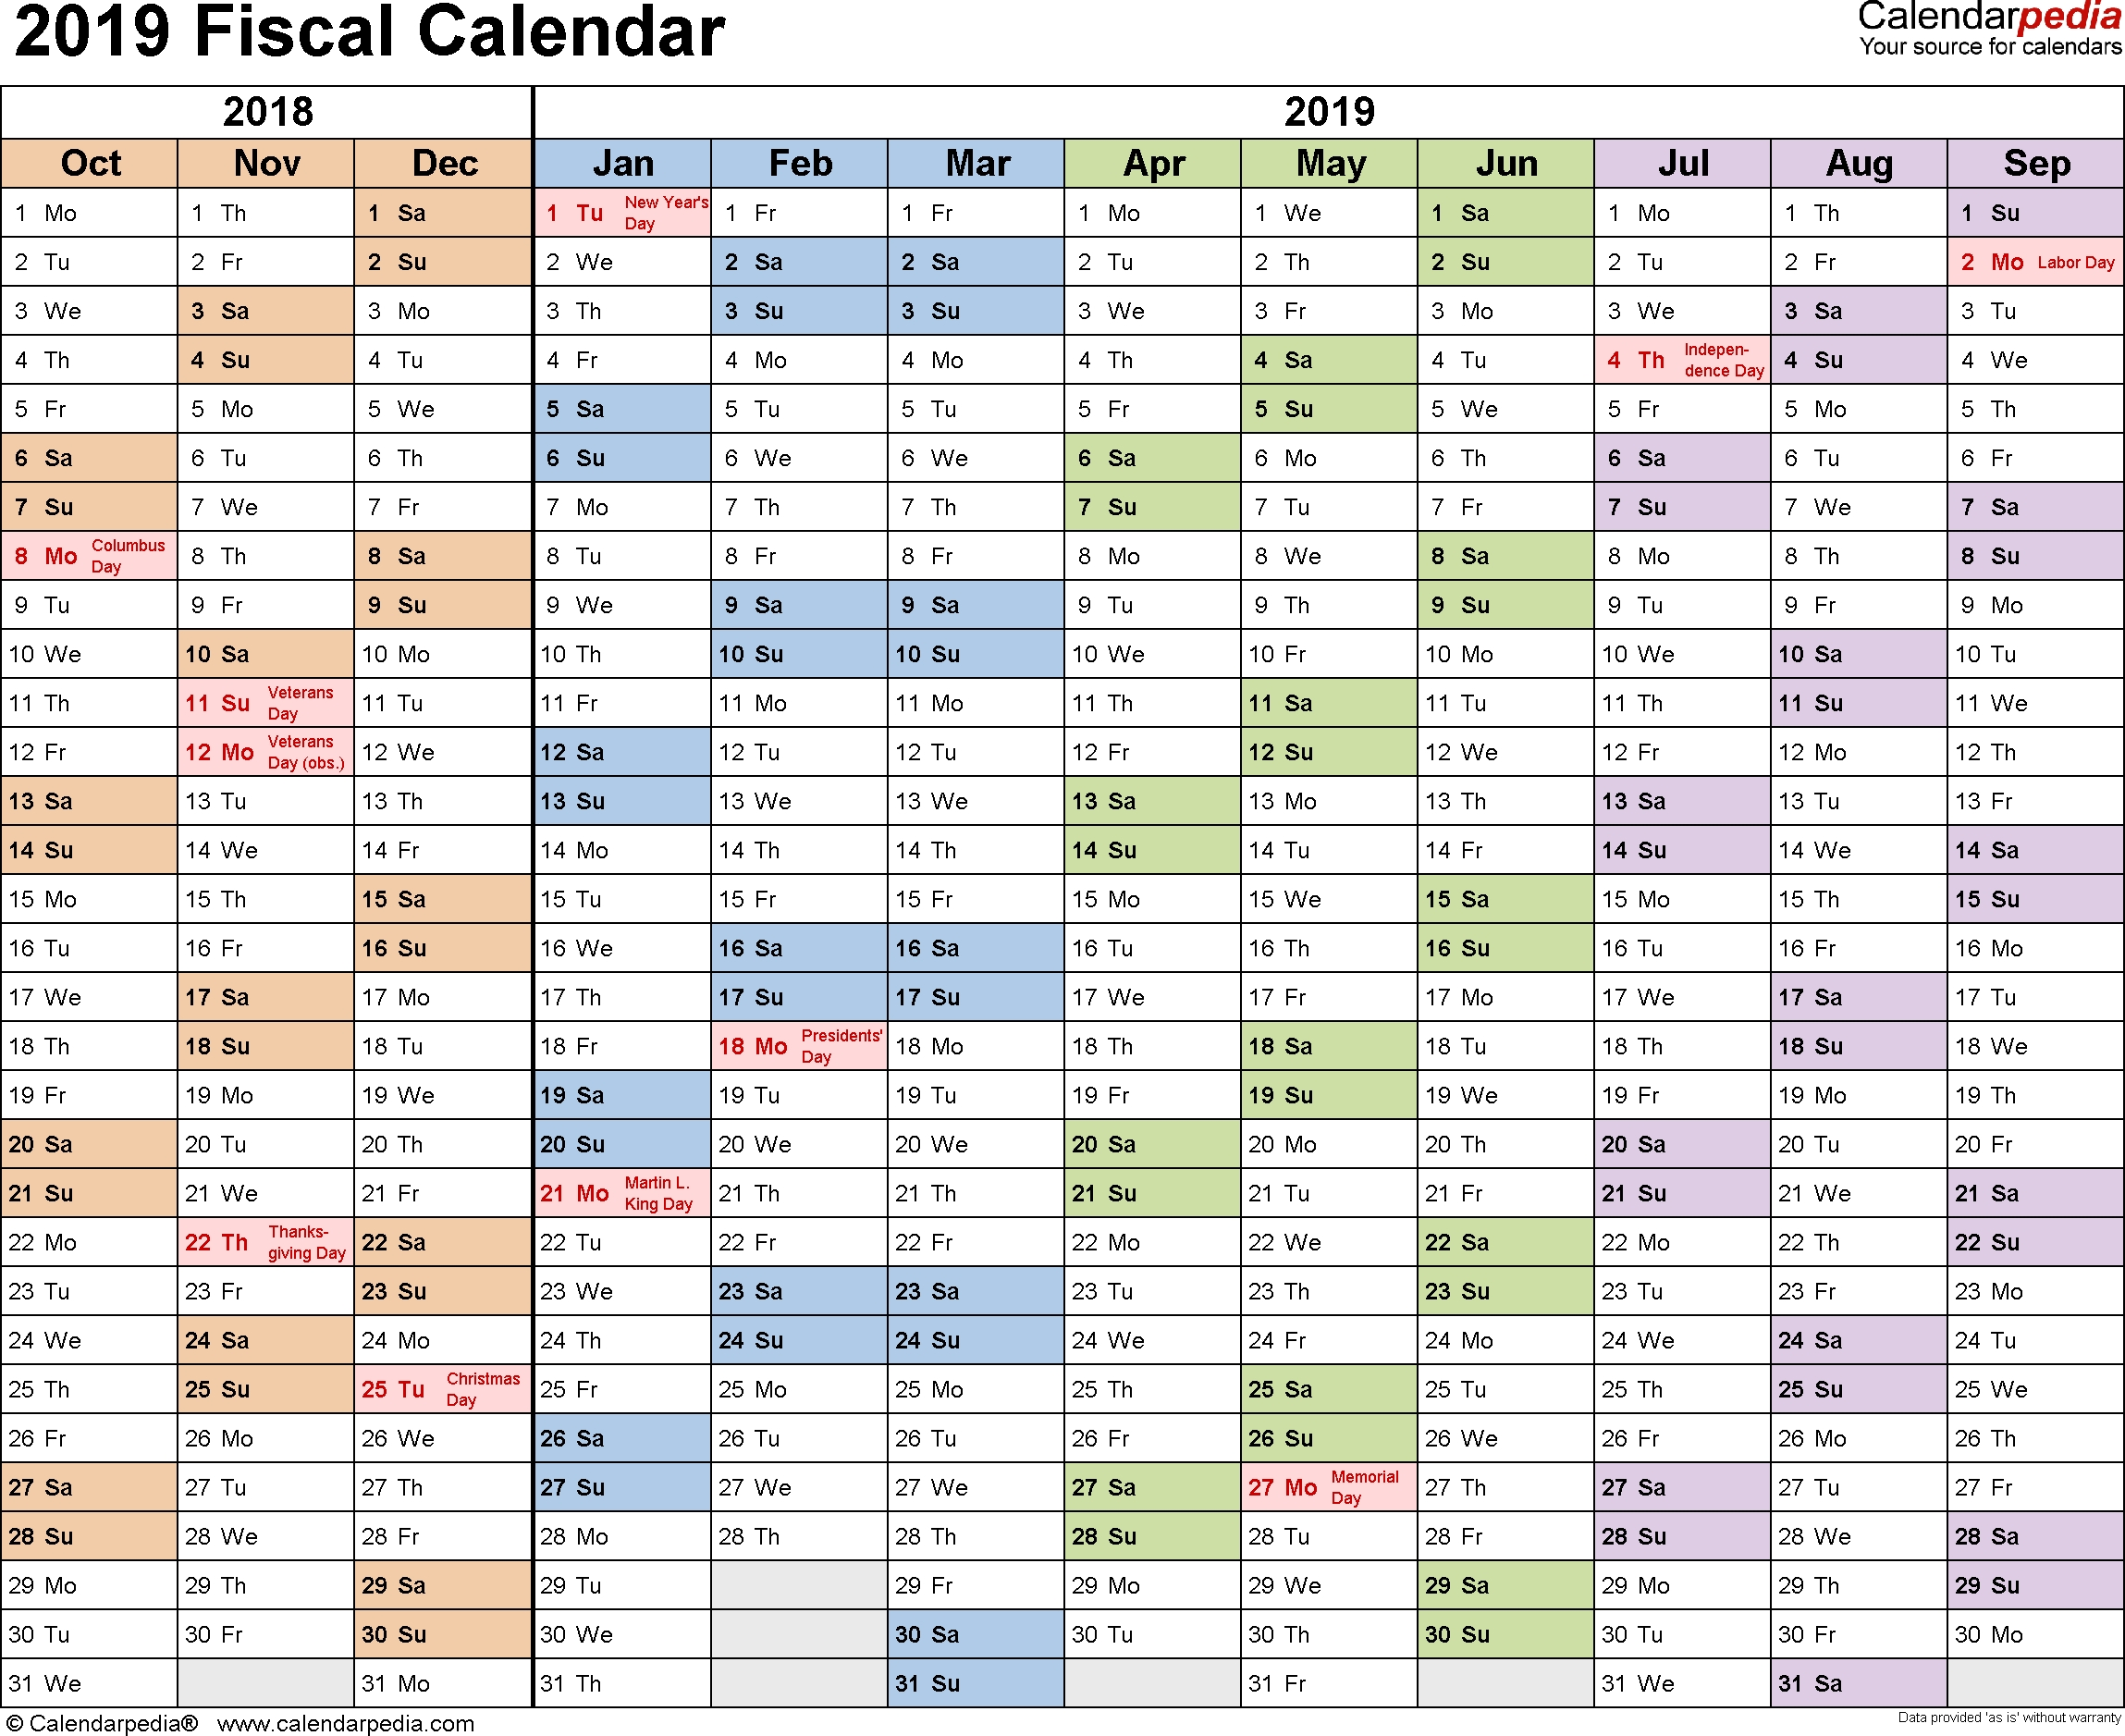 Fiscal Calendars 2019 - Free Printable Word Templates regarding Financial Calendar 2019 With Week Numbers